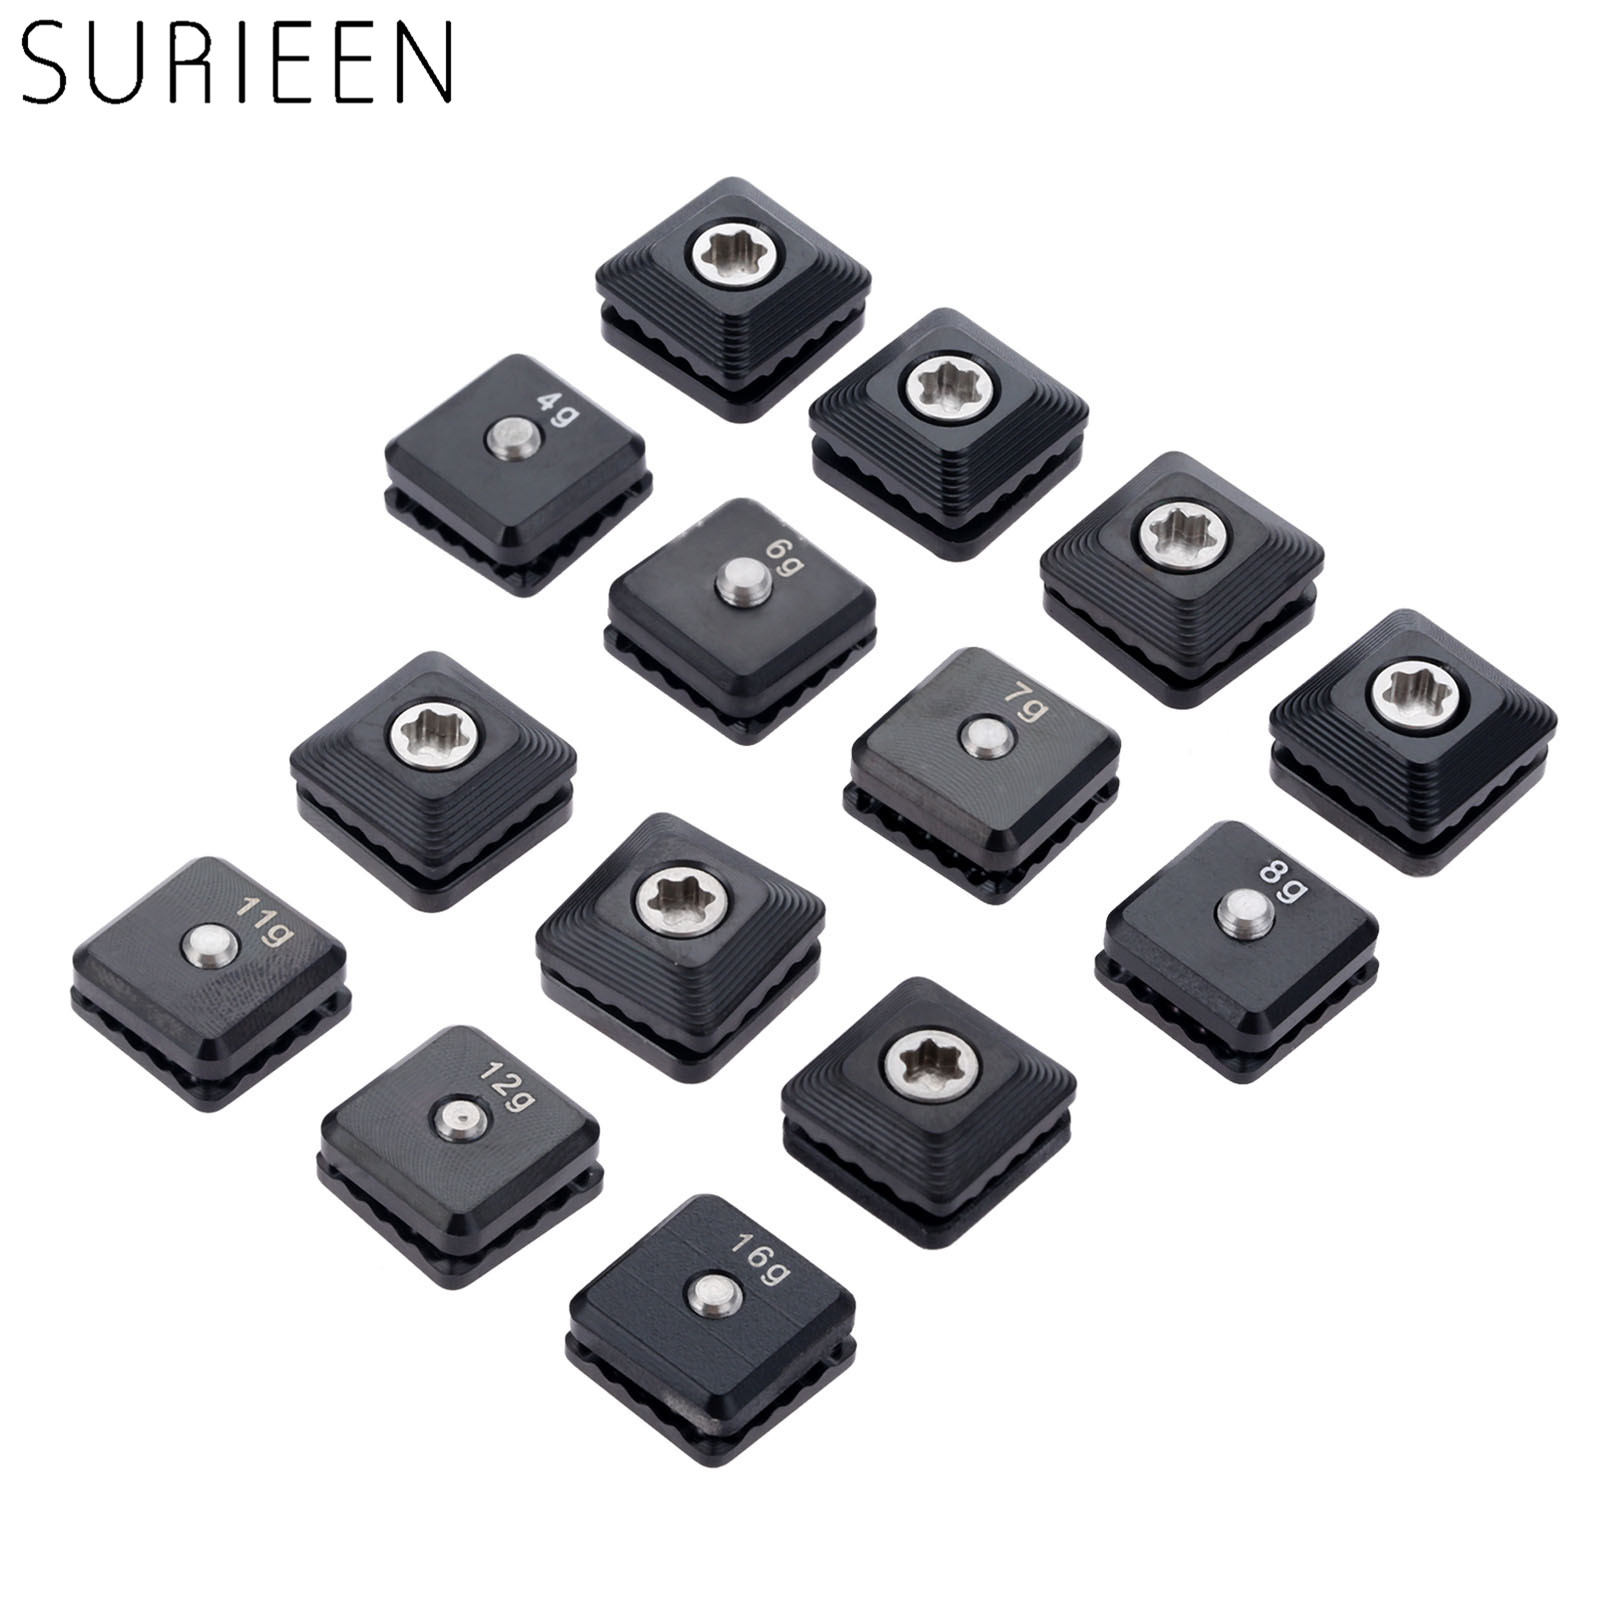 SURIEEN 1Pc Alloy Golf Weight Screw Replacement For Taylormade M5 Driver Head Golf Club Head Accessories 4g 6g 7g 8g 11g 12g 16g